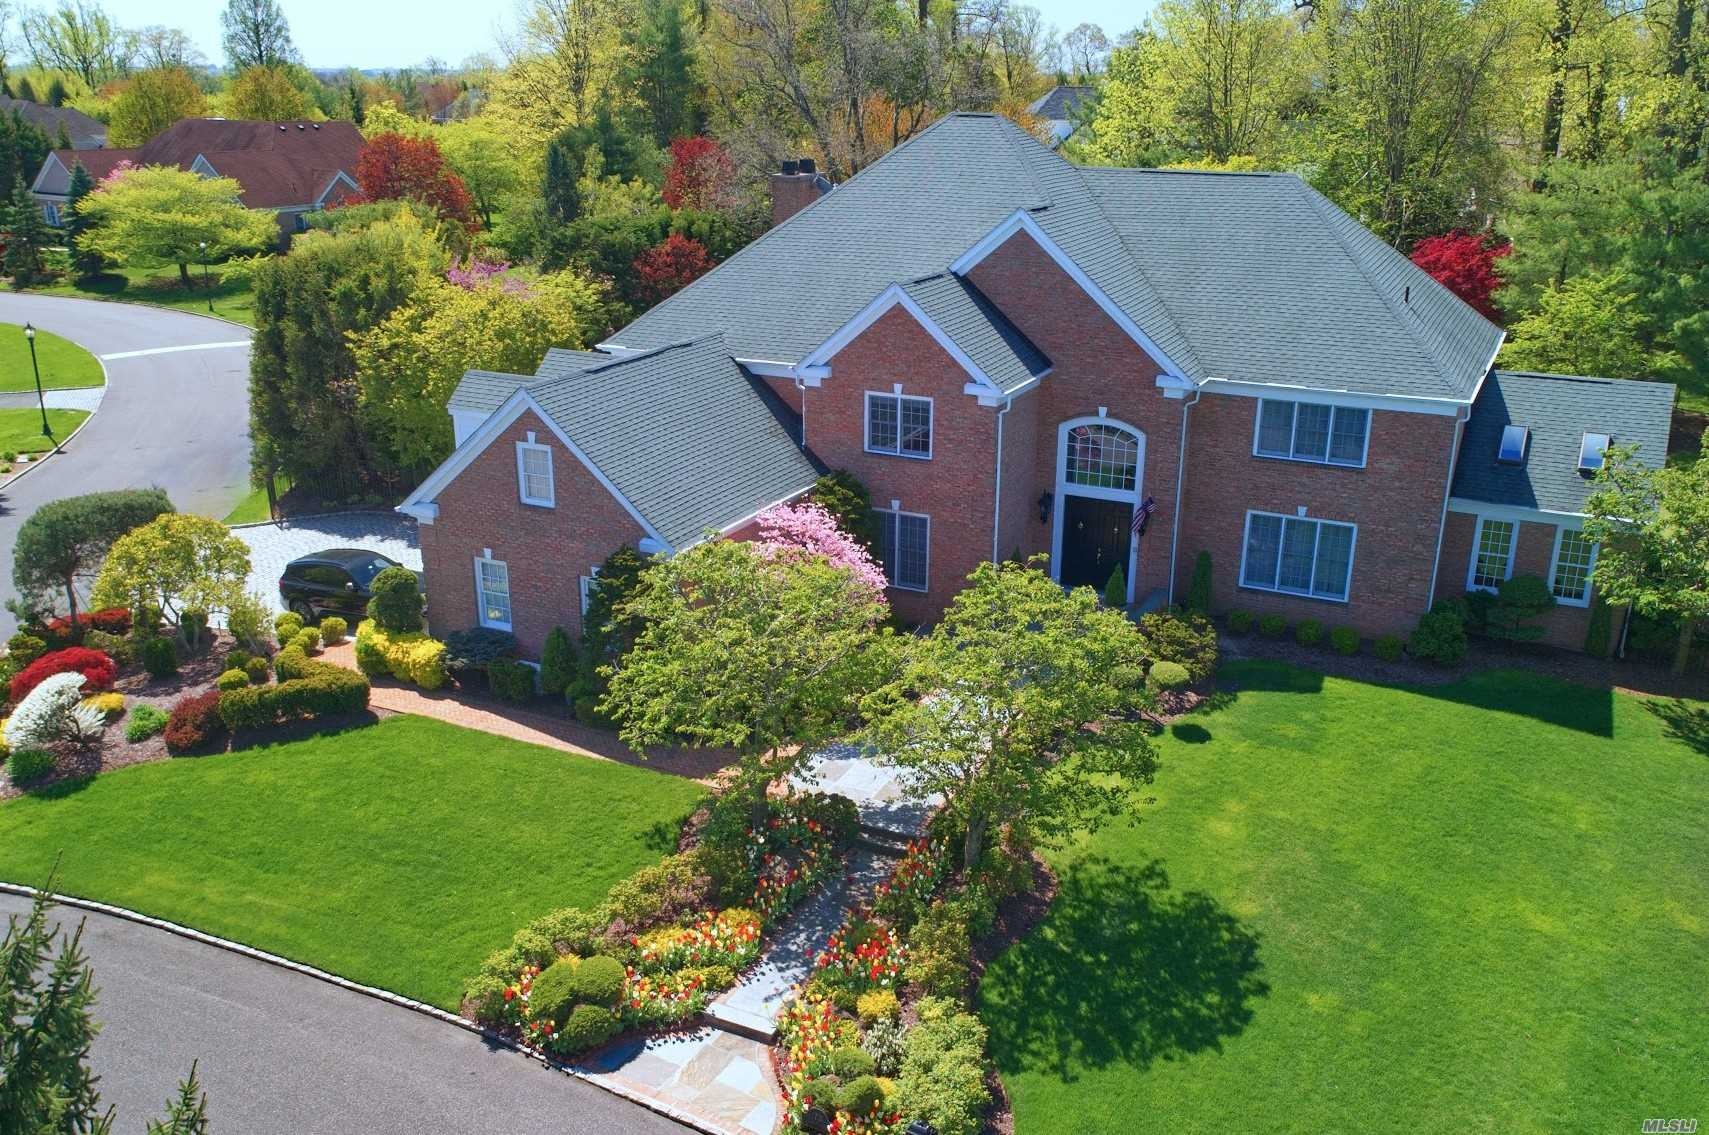 VIDEO PROPERTY TOUR LINK A MUST WATCH!!! STONE HILL ALLURE Spectacular all brick estate within a private cul de sac inside North Shore's most sought after gated community. Boasting 5 bedrooms, 5.5 baths, a dramatic 2 story entry foyer, open living room layout, formal dining room, separate sunroom with skylights, gourmet eat-in-kitchen with wall oven, all high end appliances, desk area and separate sun drenched breakfast room. Family room with soaring ceilings and access to the private landscaped yard and koi pond. A total of 5 bedrooms, one of which is located on the first floor with a bathroom, a large master en suite with two separate bathrooms and 4 closets. Full Attic is ideal for extra storage if needed and a 3 car garage. Lush grounds are a serine setting for relaxing or entertaining. Common Tennis Courts, 24 hour gate house, roving patrol and snow removal are some of the amenities worth mentioning in this magnificent gated community you may call home.